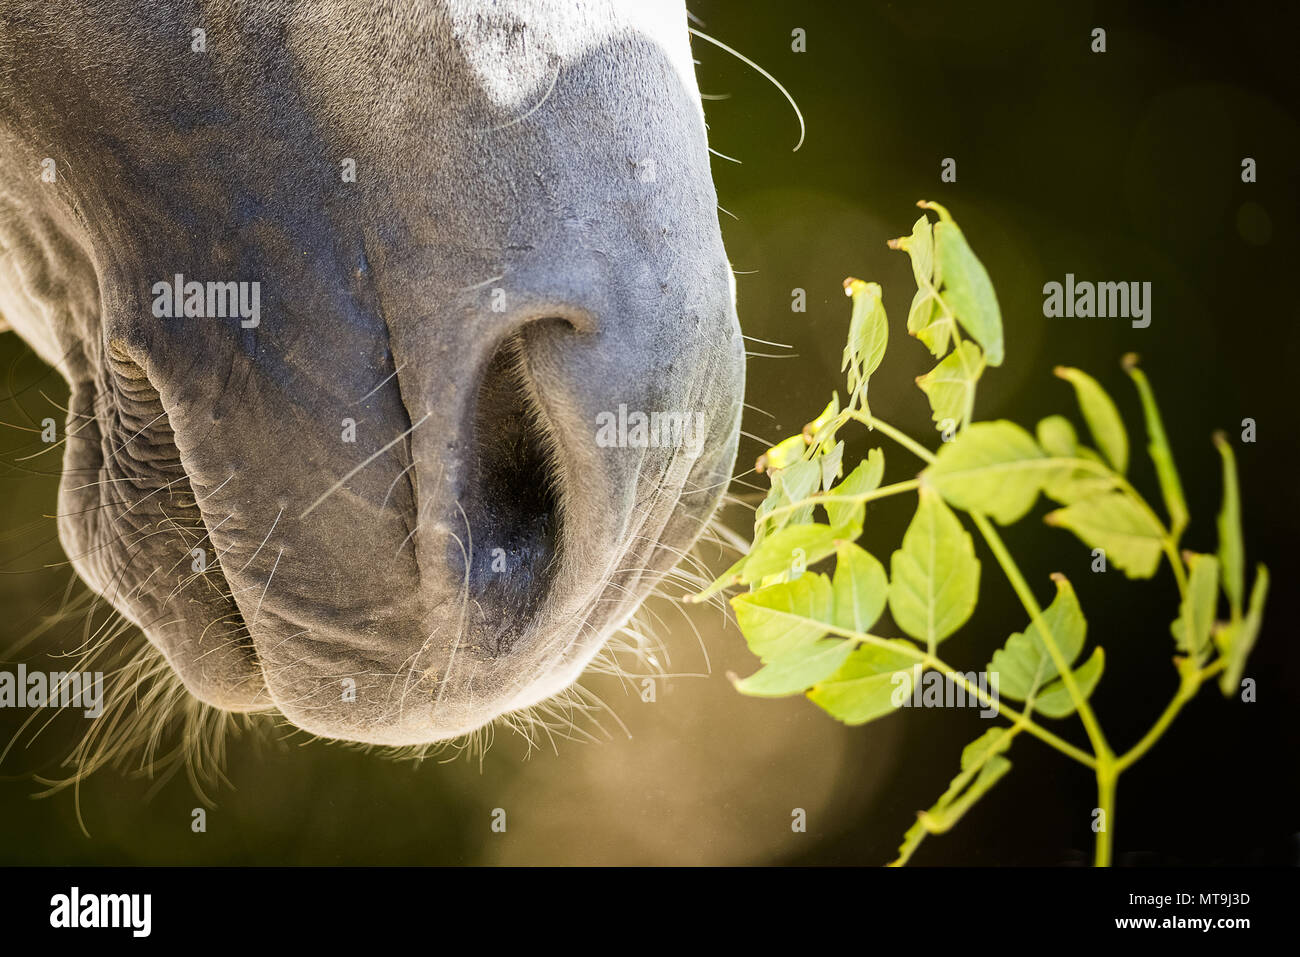 Arabian Horse. Close-up of nostrils and mouth af a gray horse. Abu Dhabi Stock Photo